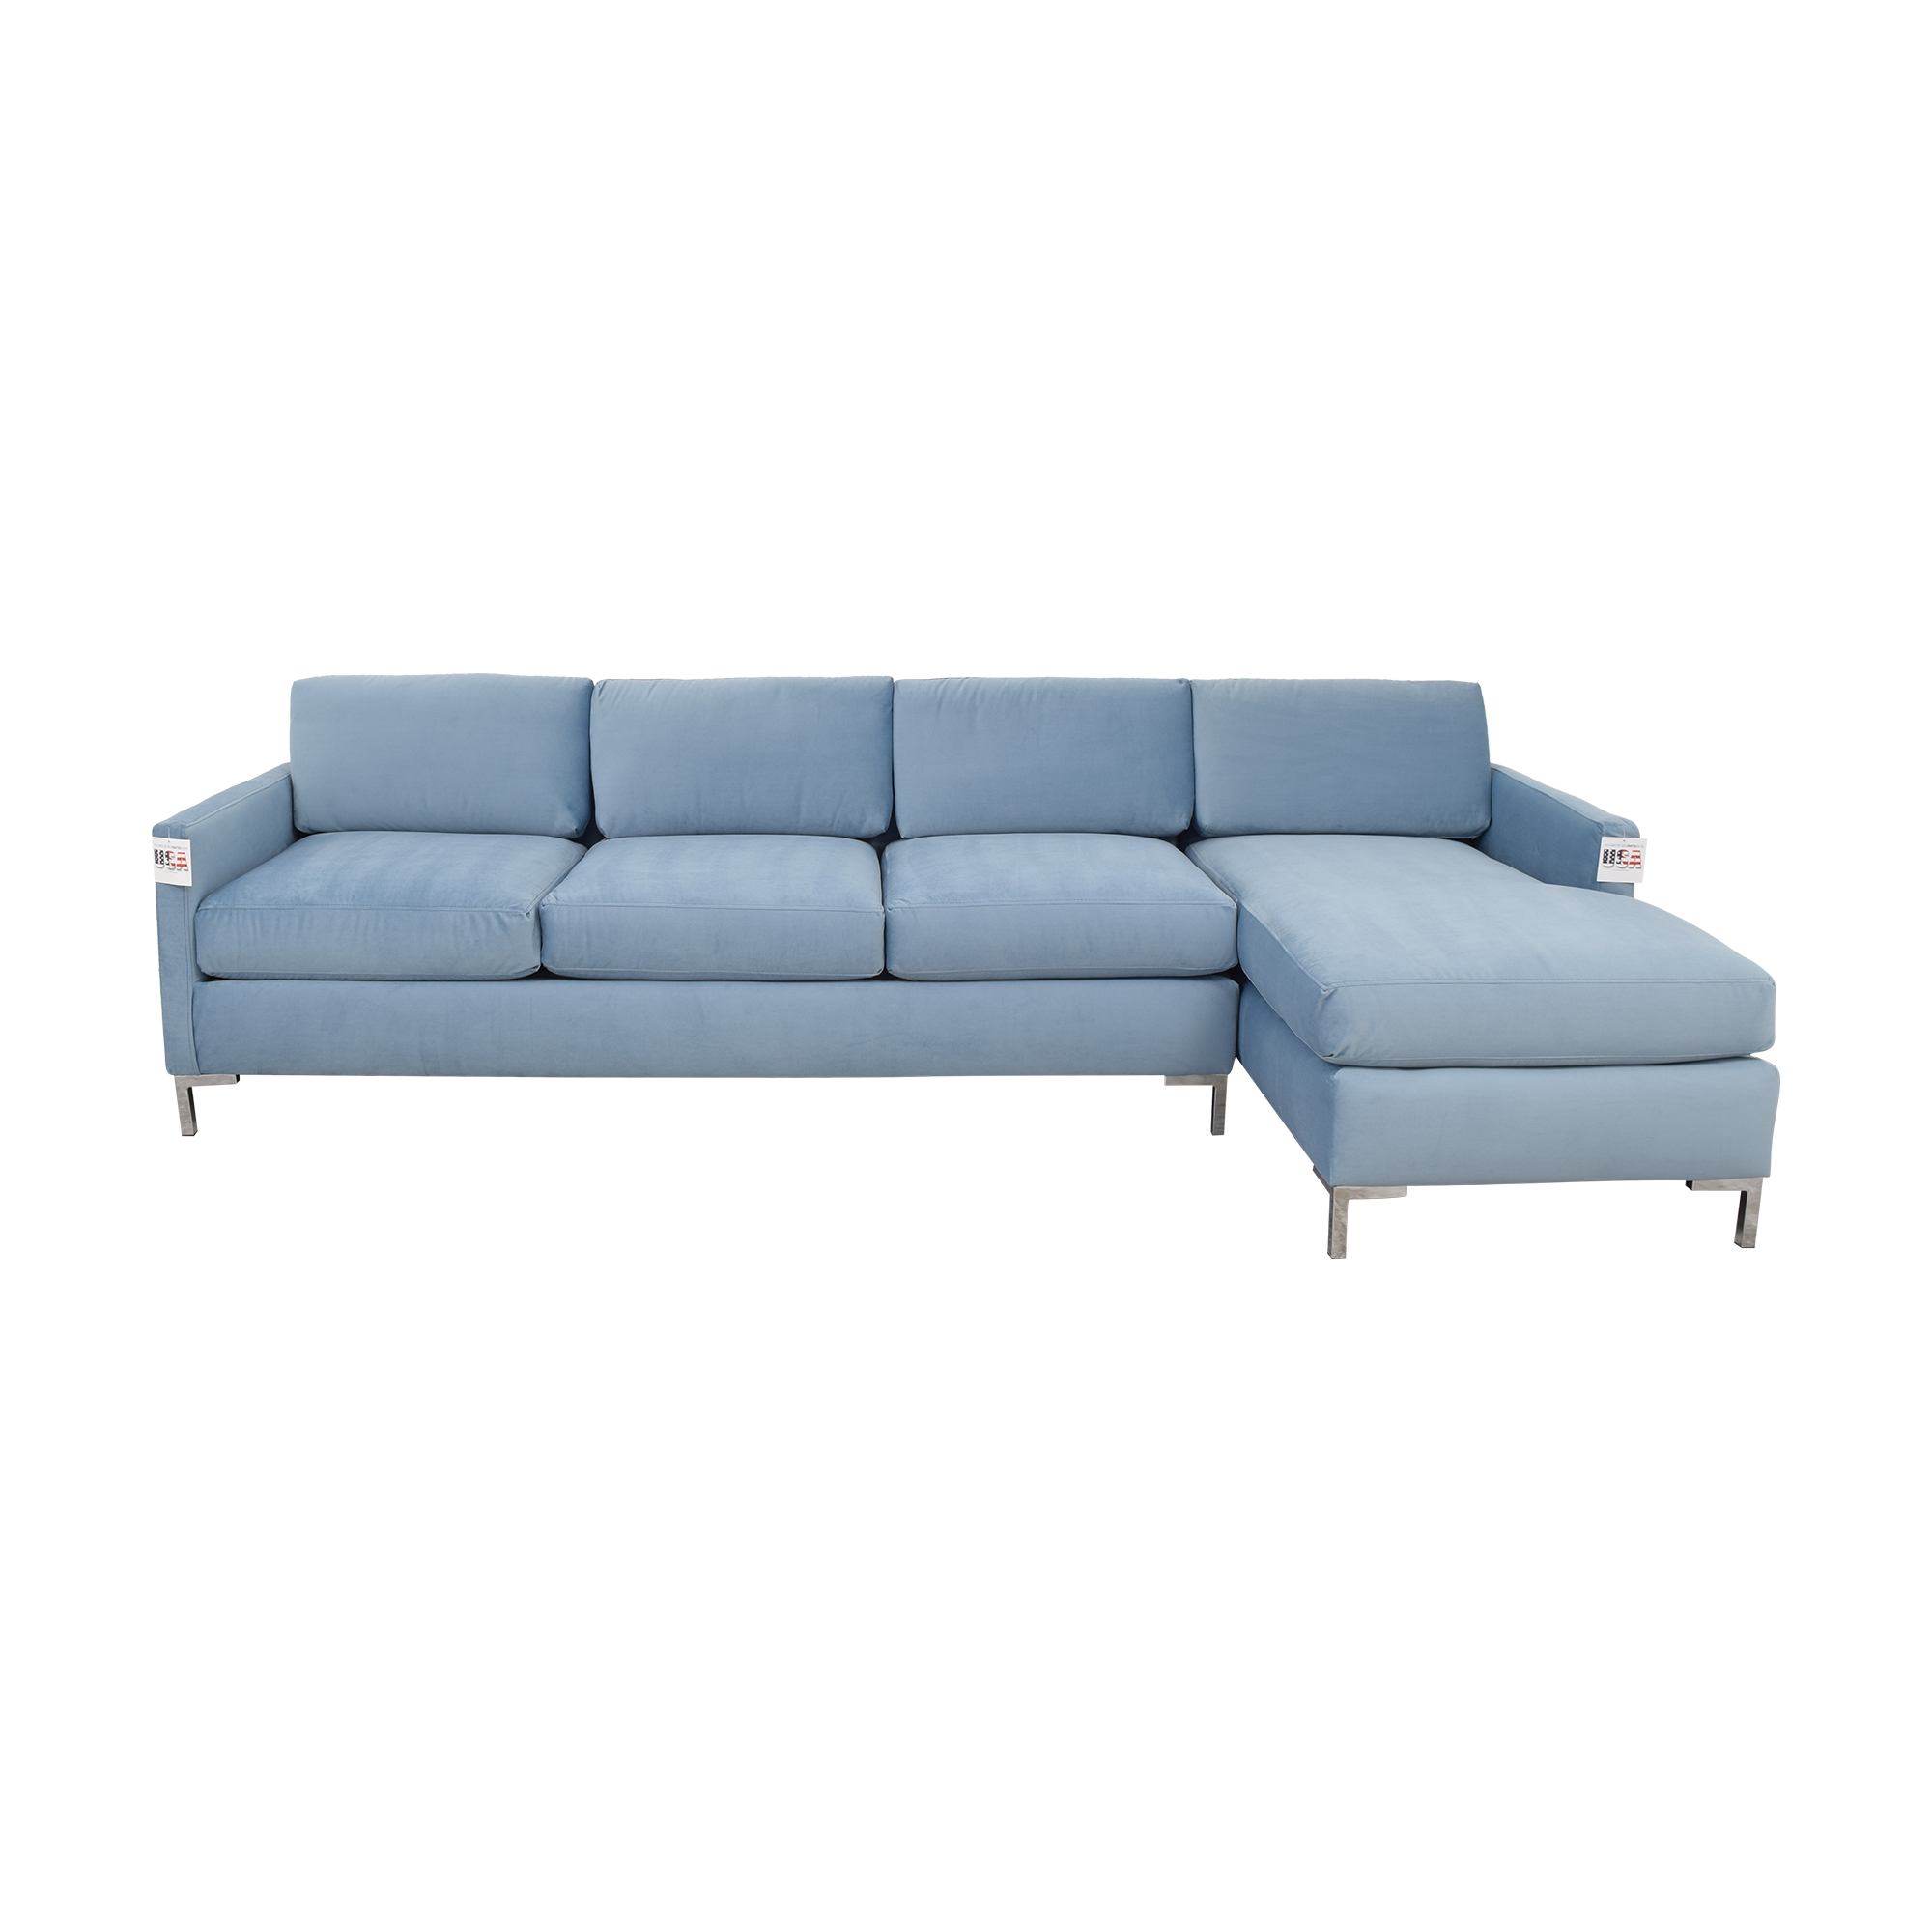 The Inside The Inside Modern Sectional for sale